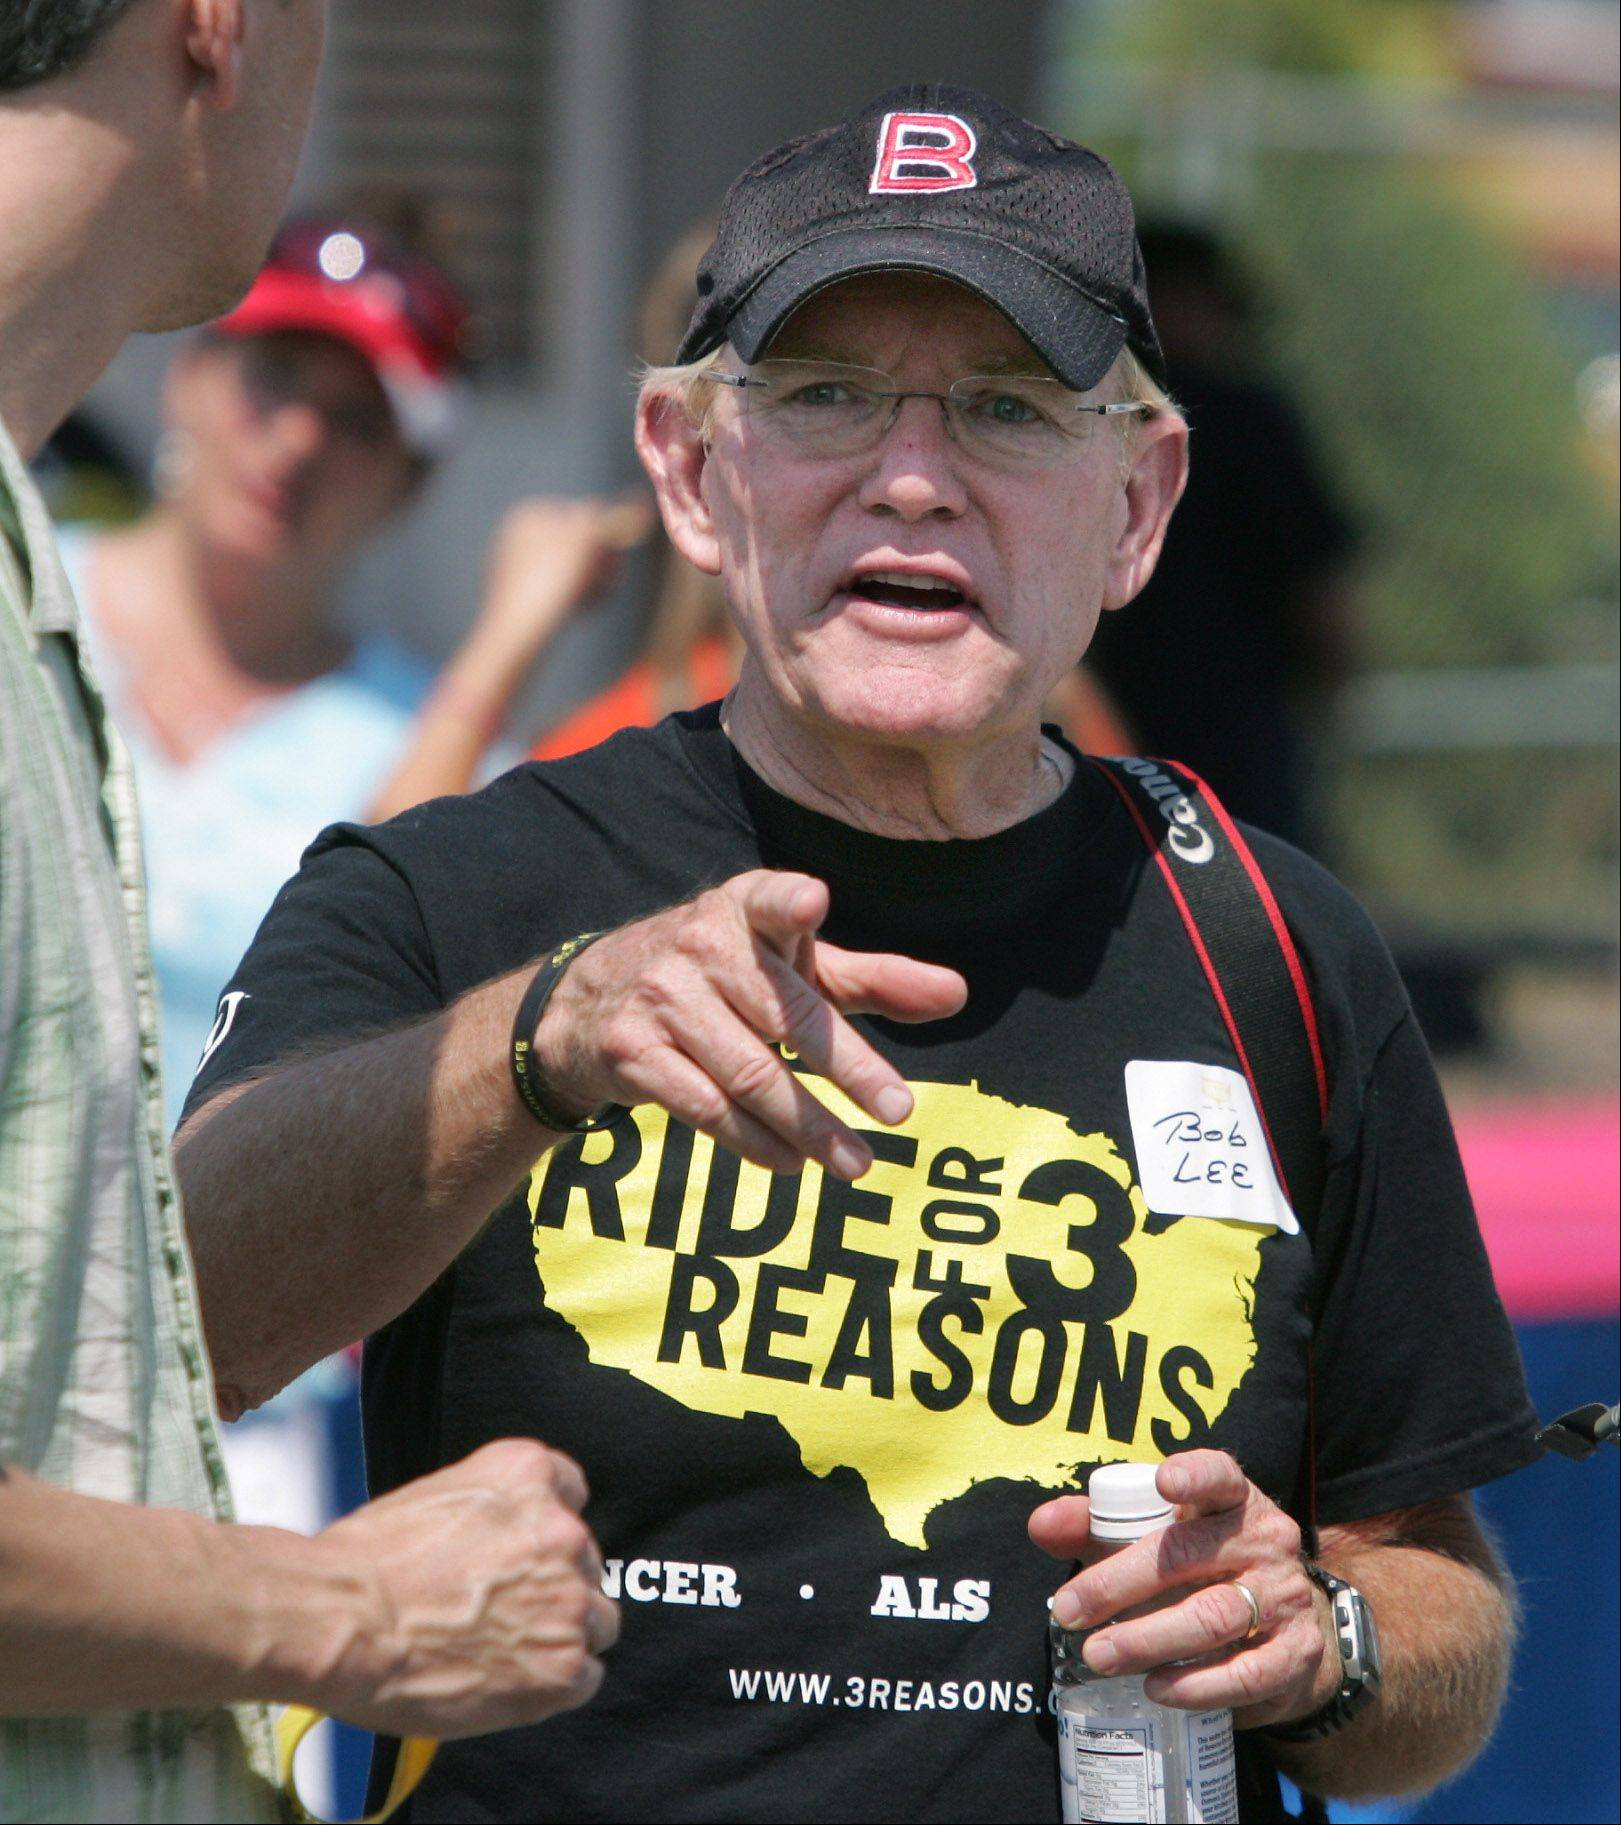 Bob Lee discusses his Ride for 3 Reasons with fellow residents at Barrington's Fourth of July Festival last month. Lee's ride, which will raise money for ALS and cancer research, as well as hospice care, begins Sept. 5 in Vancouver, Canada.